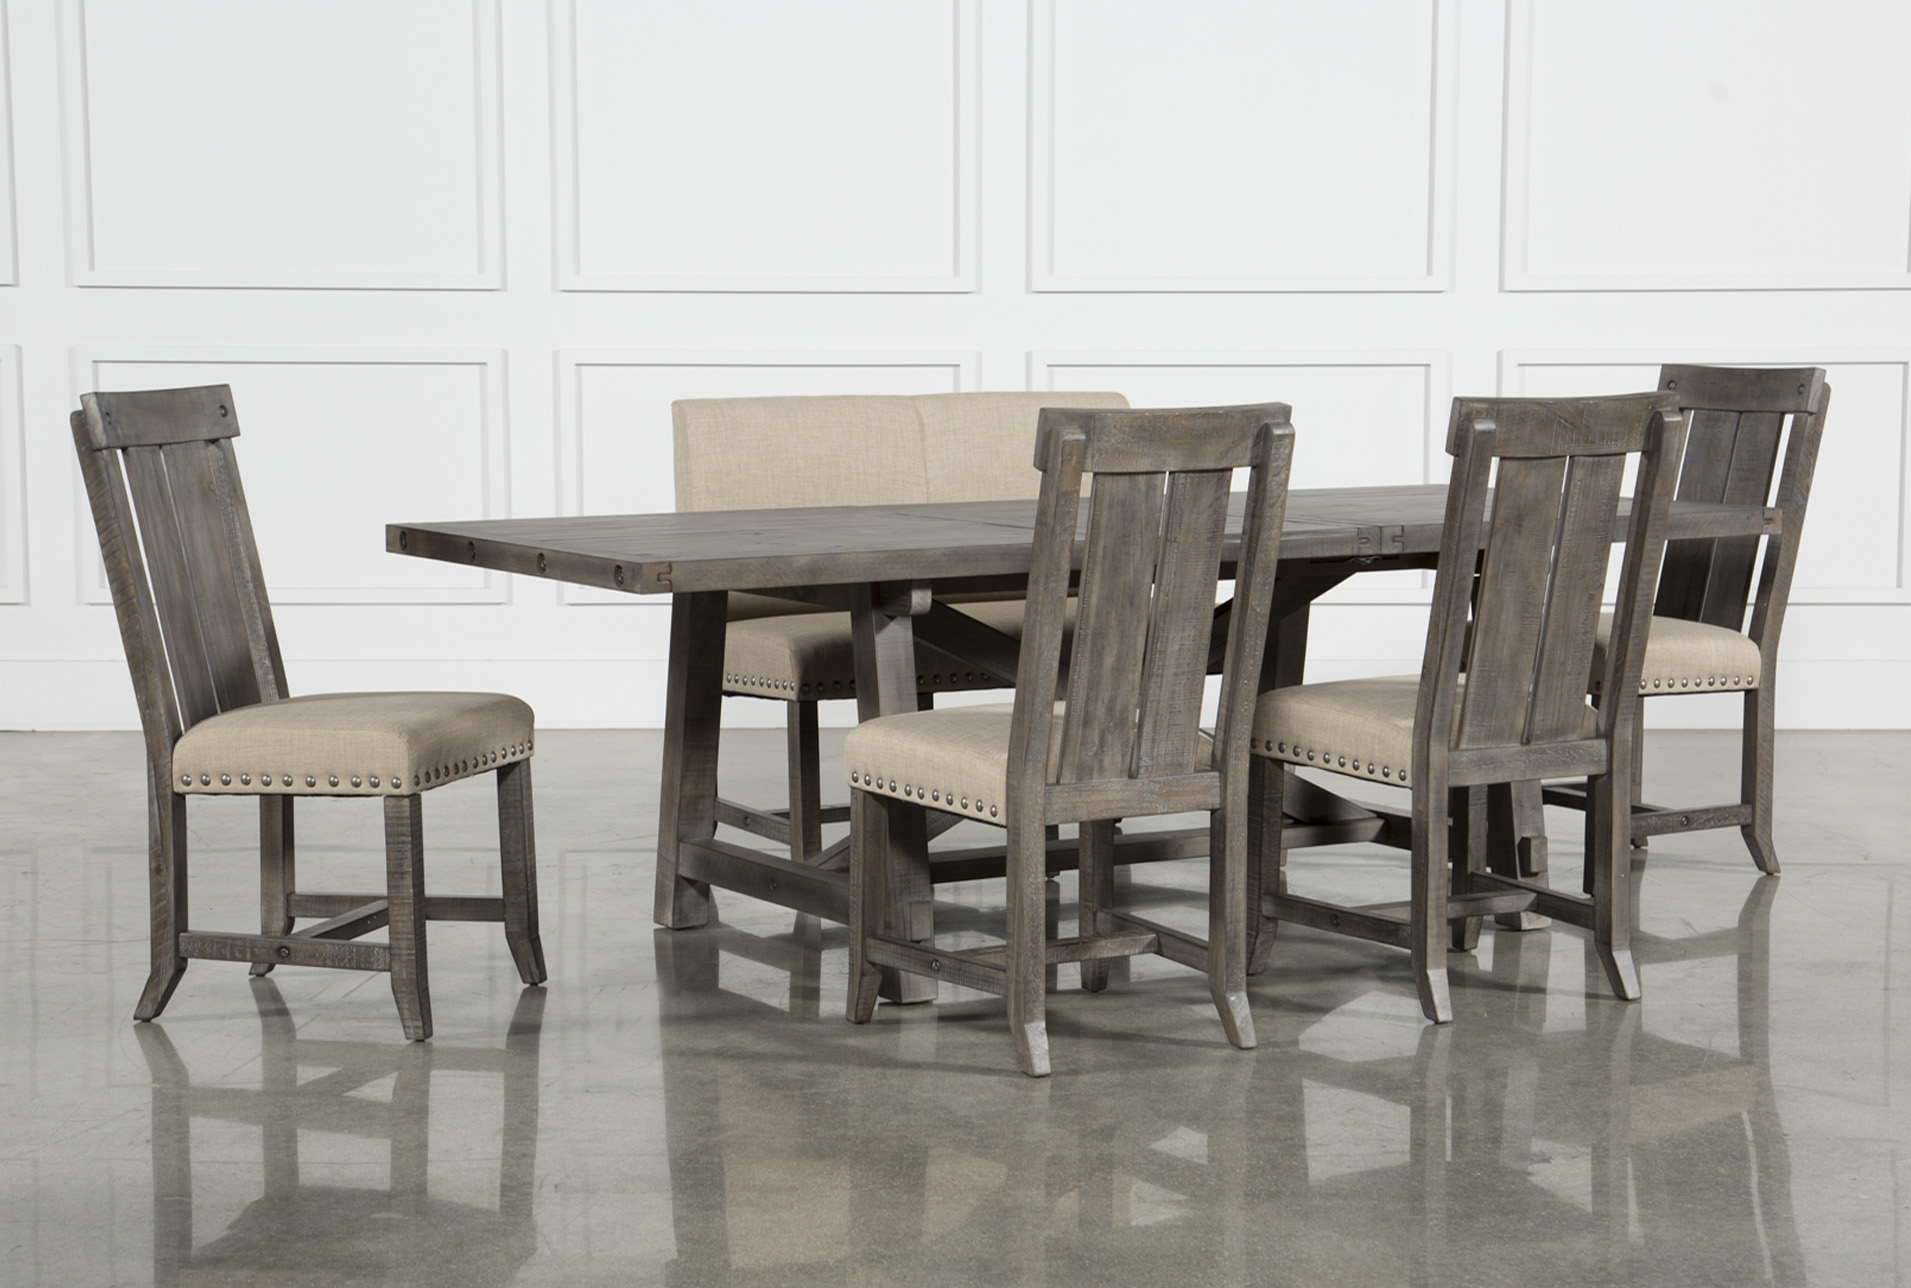 Jaxon Grey 6 Piece Rectangle Extension Dining Set W/Bench U0026amp; Wood Chairs  (Qty: 1) Has Been Successfully Added To Your Cart.